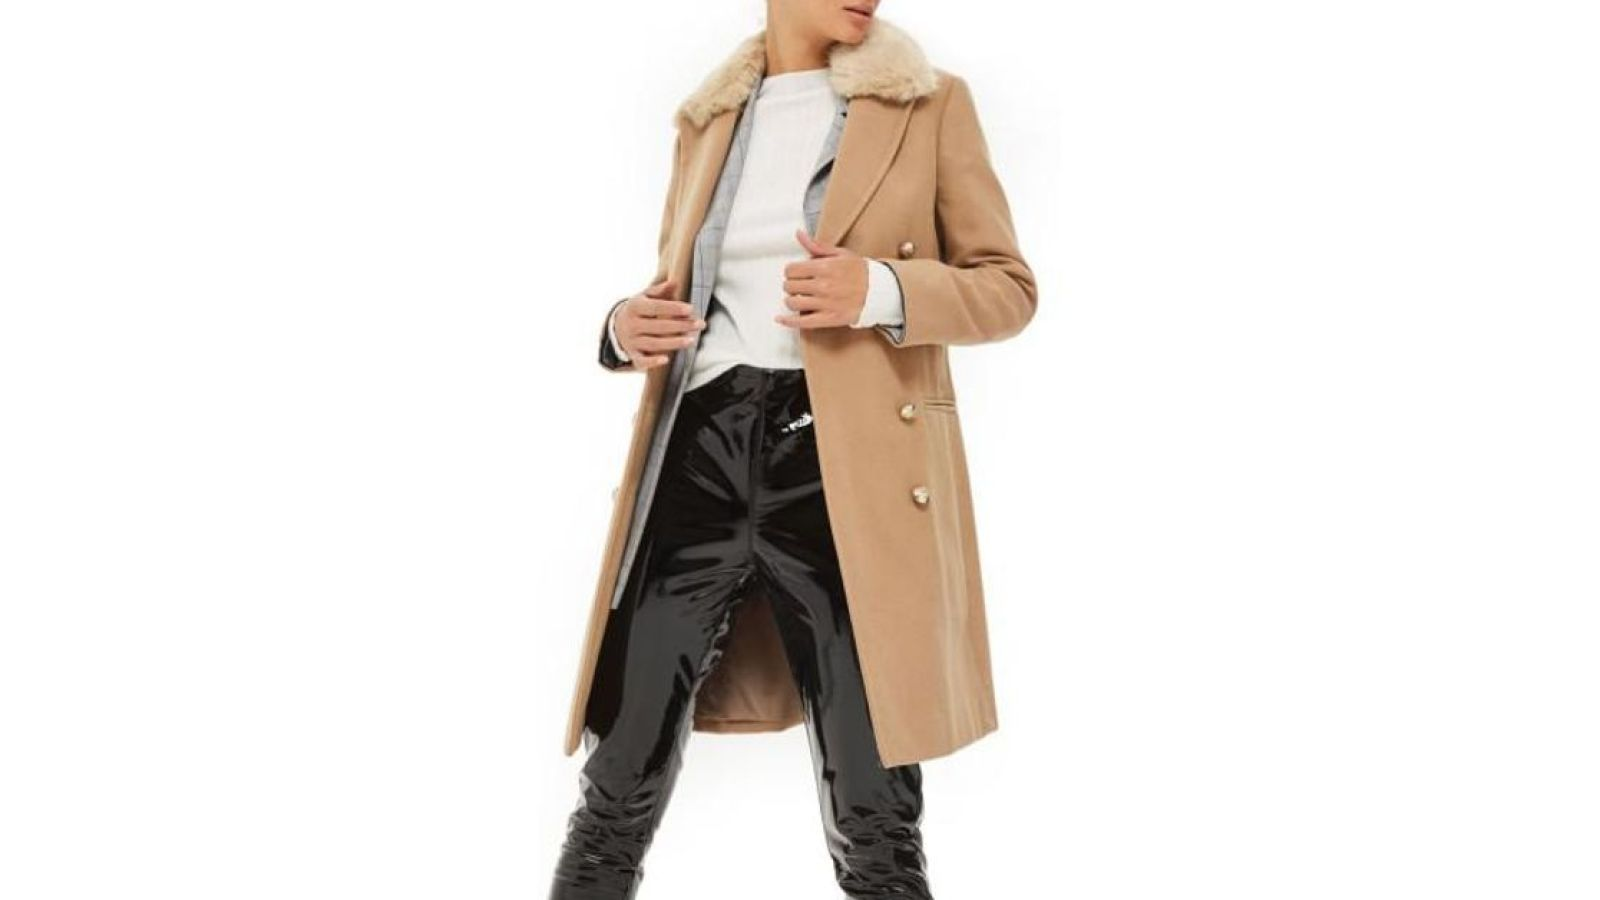 981ccb4e68 This Topshop Coat Is Nearly Half Off and Has a Removable Faux Fur Collar